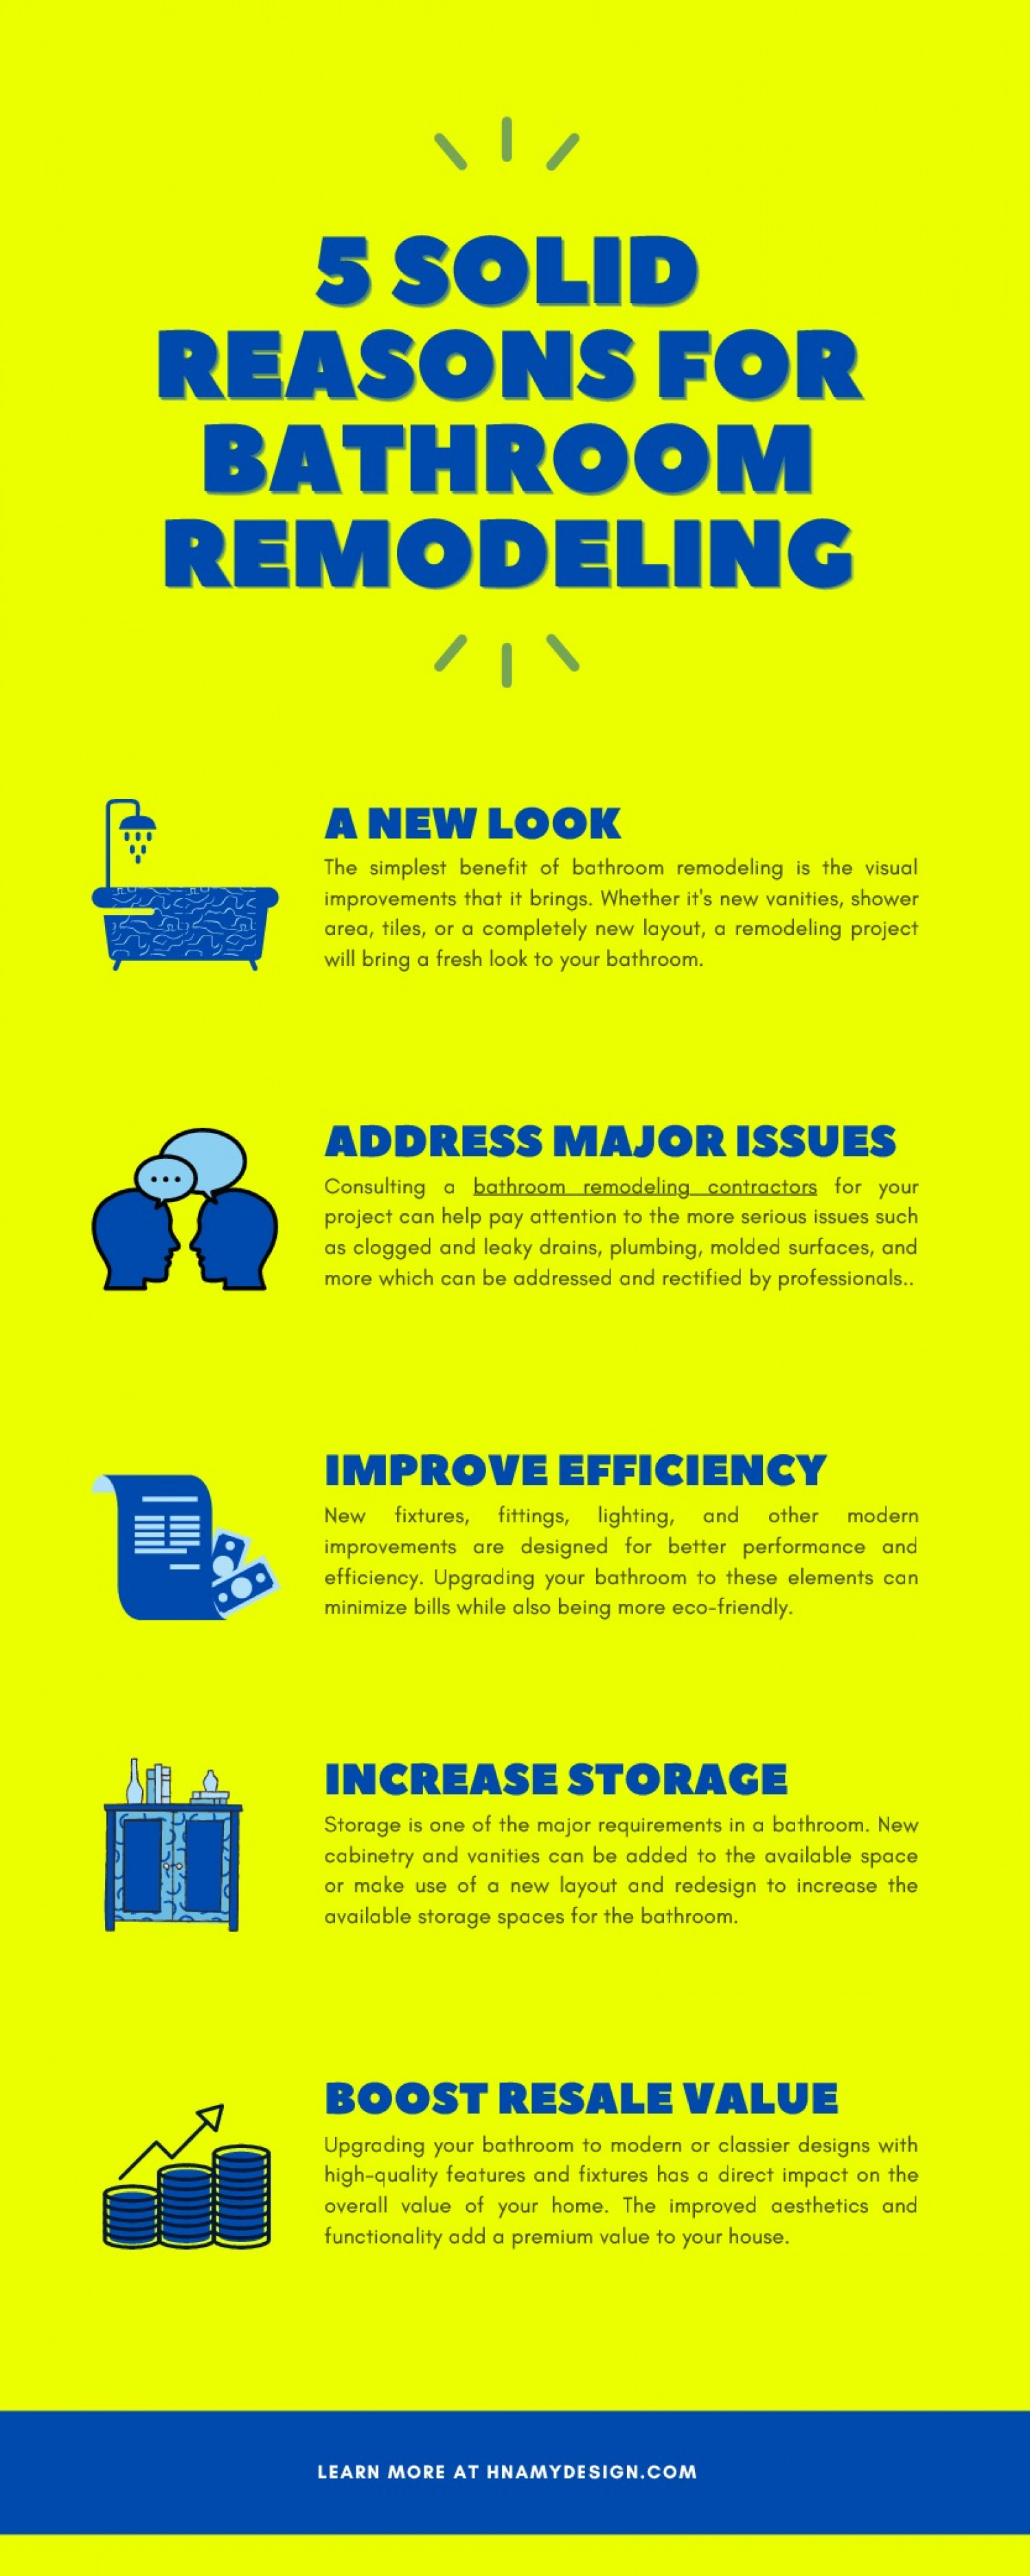 5 Solid Reasons for Bathroom Remodeling Infographic